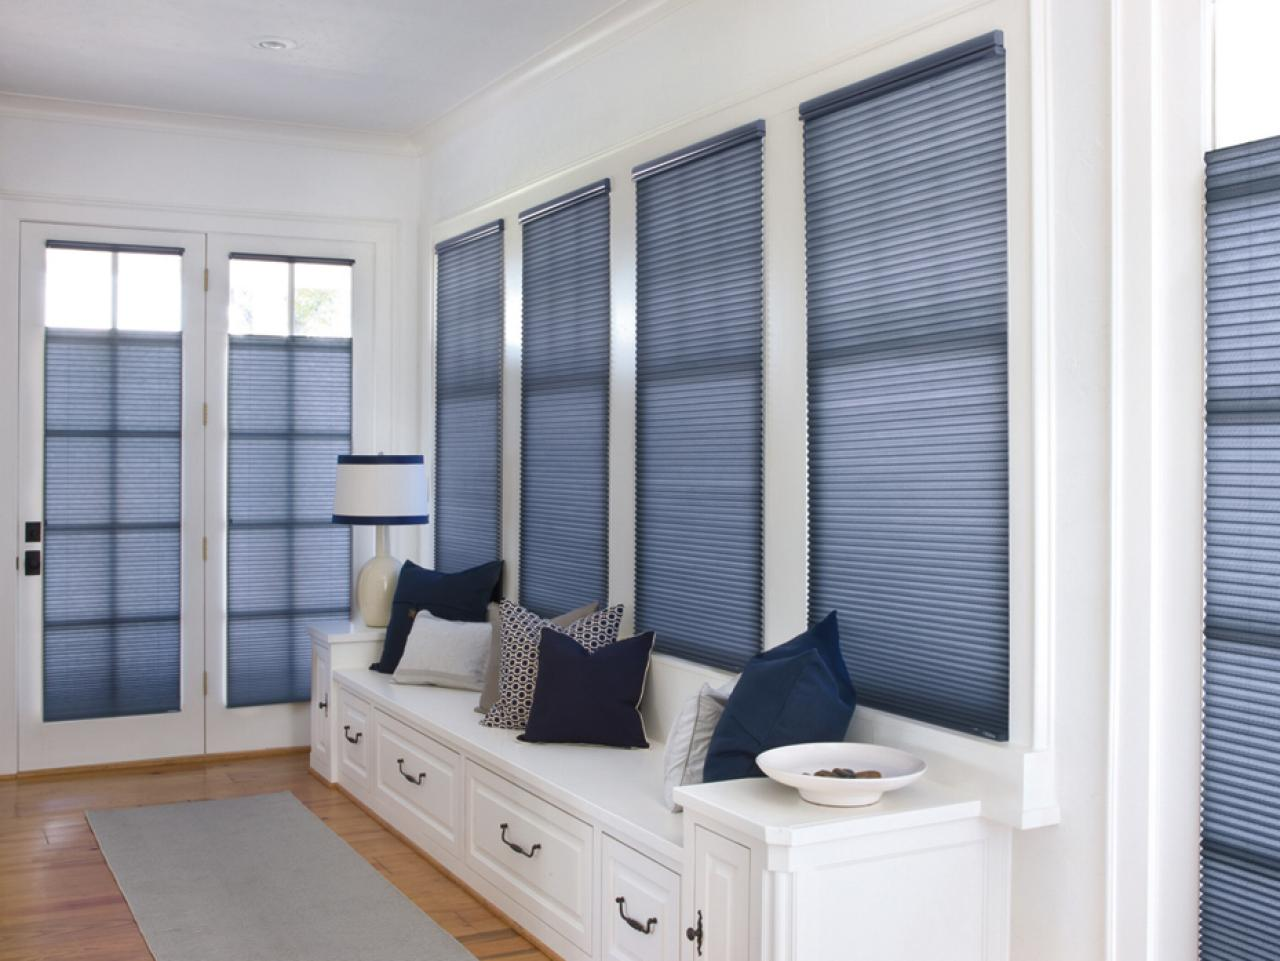 wood f blinds multiple uncategorized on shades cellular of accordia style with shutters vs appealing headrail and one levolor